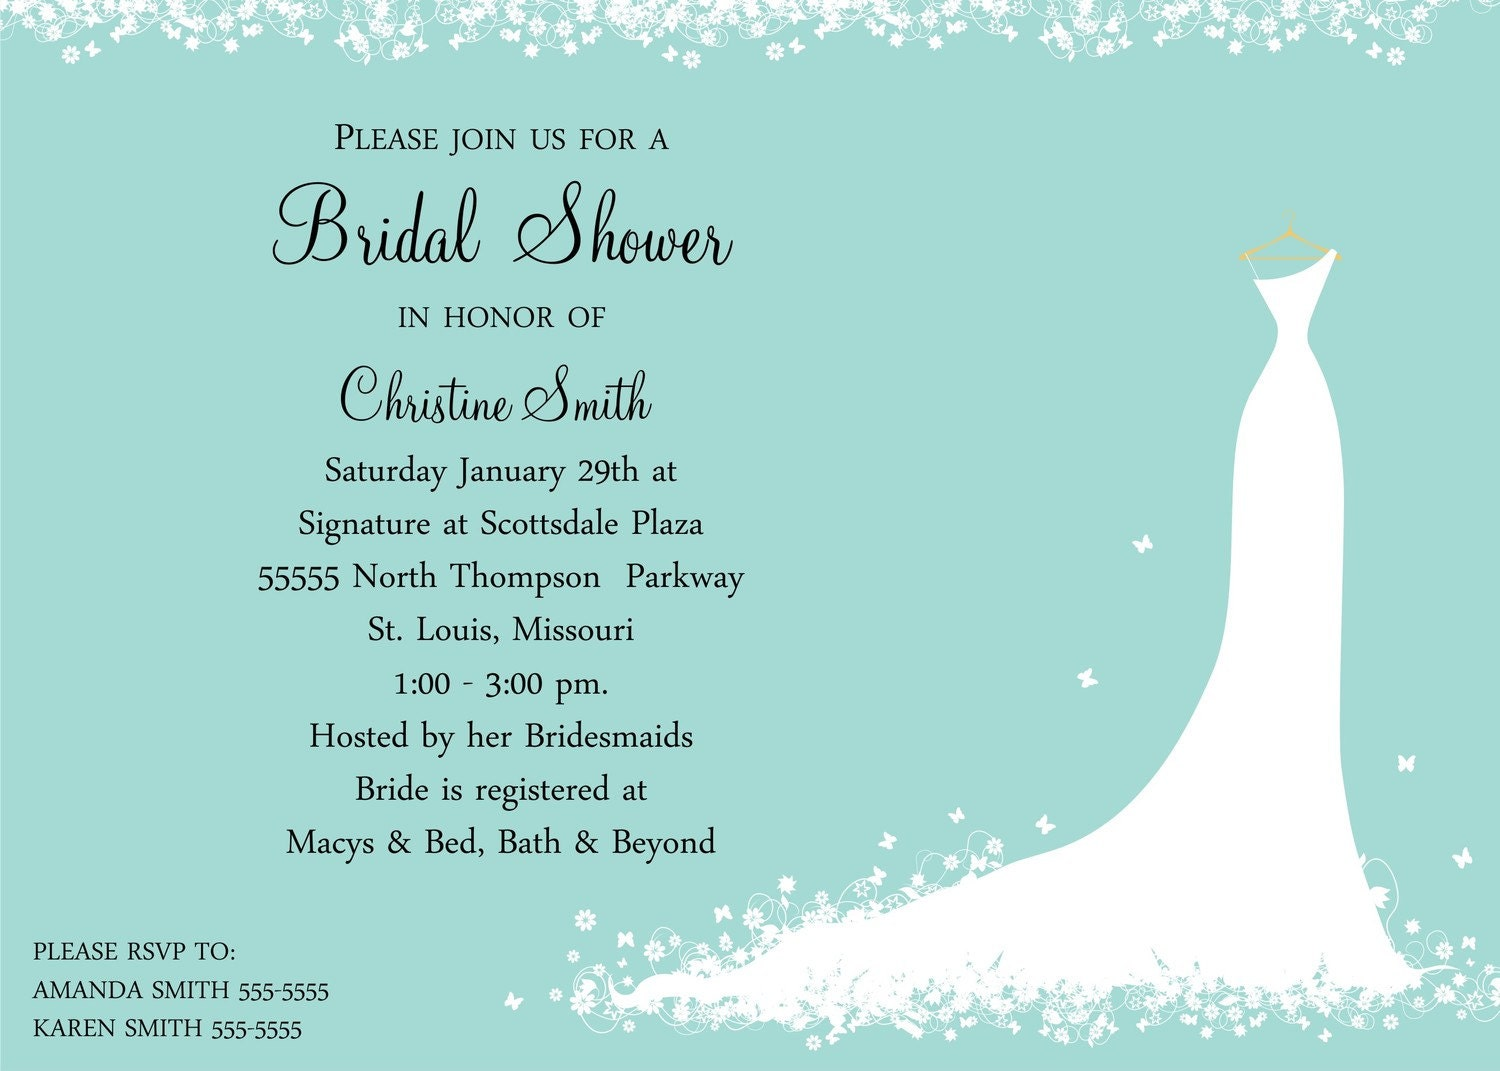 Wedding Shower Gift Card Verses : Bridal Shower Invitations: Bridal Shower Invitations Gift Card